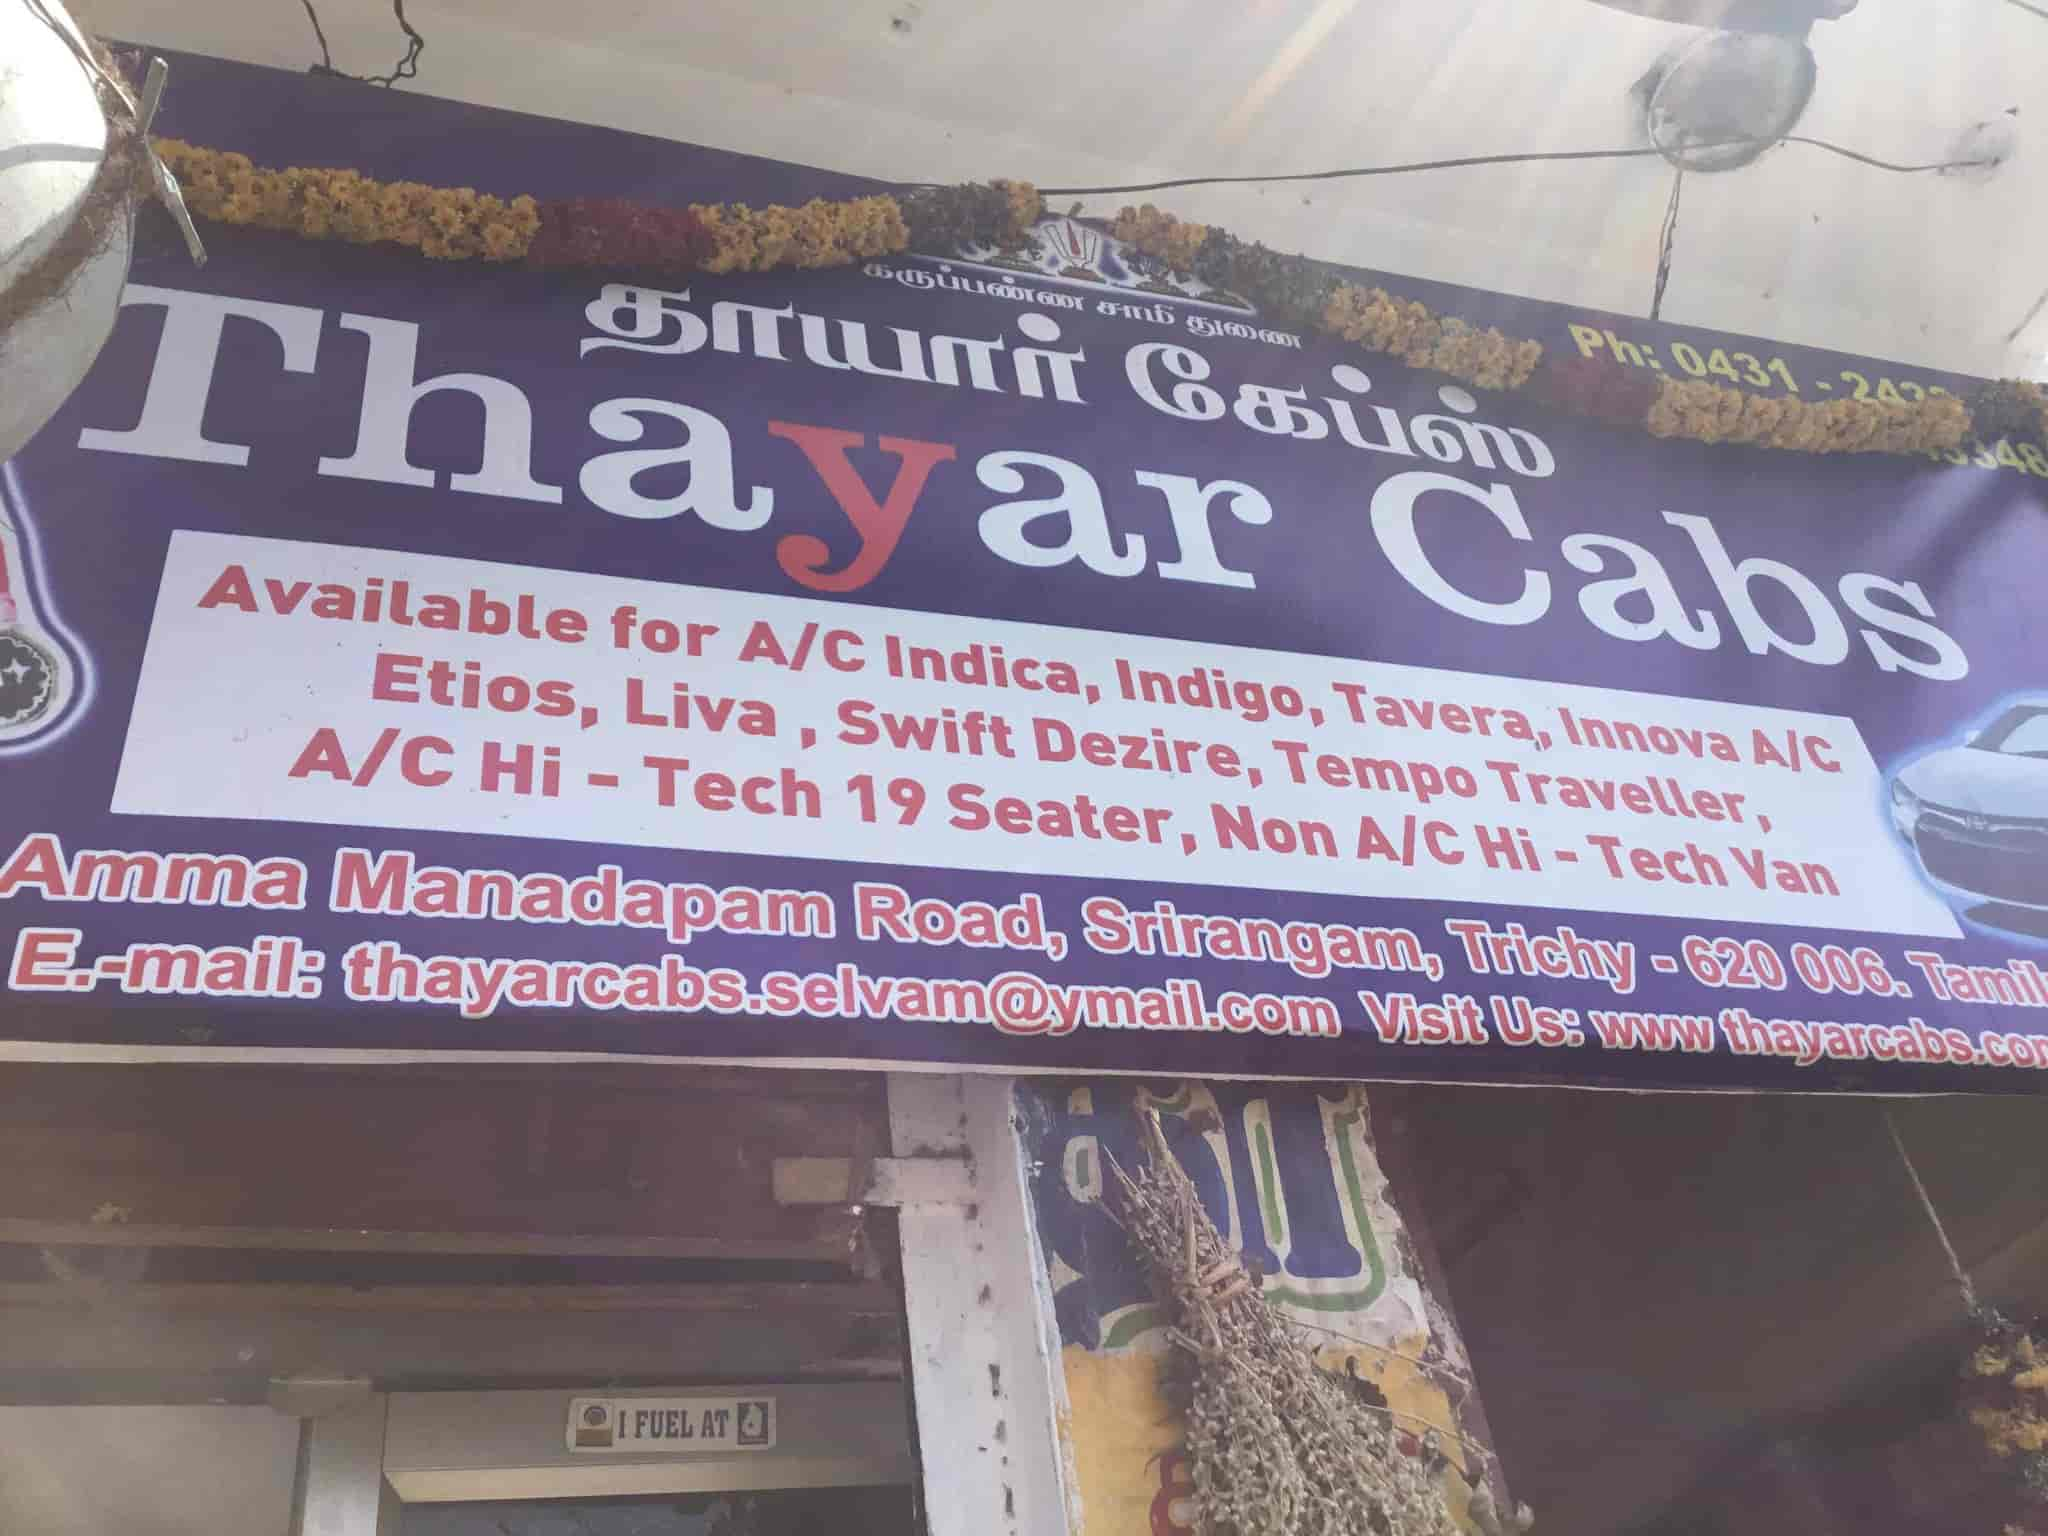 Thayar Cabs, Srirangam - 24 Hours Car Hire in Trichy - Justdial